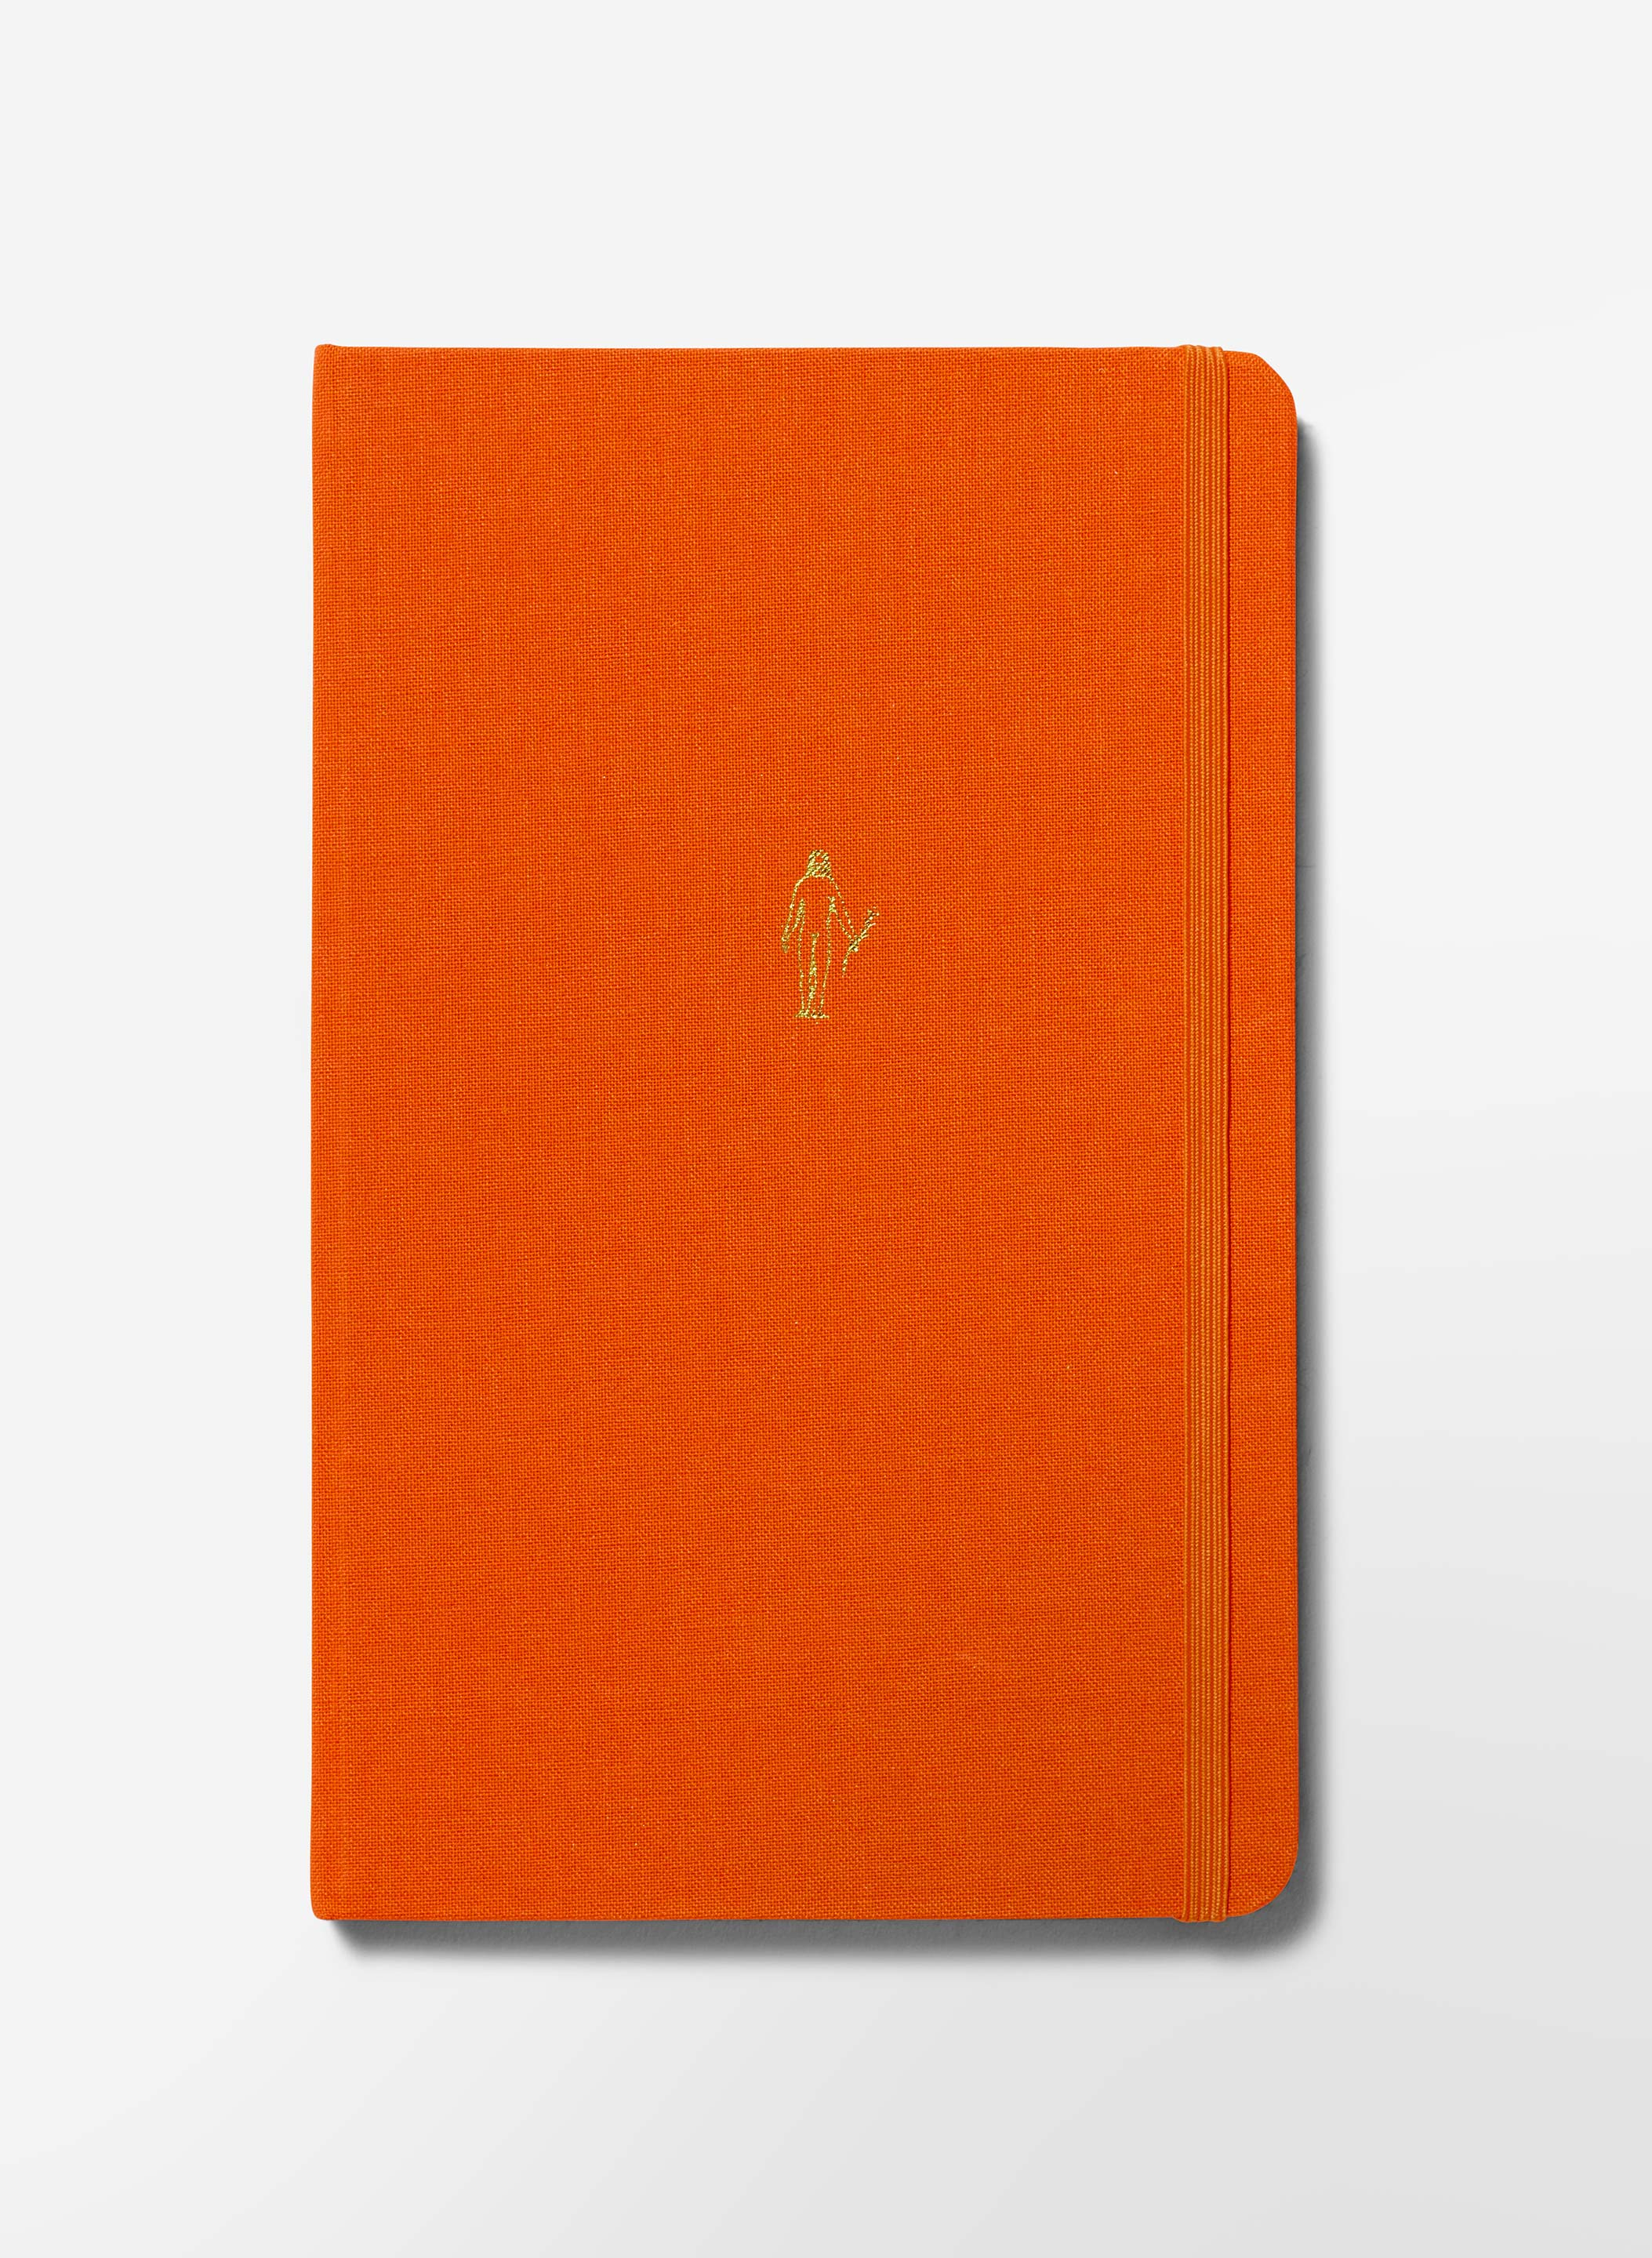 imogene + willie - orange field book by land